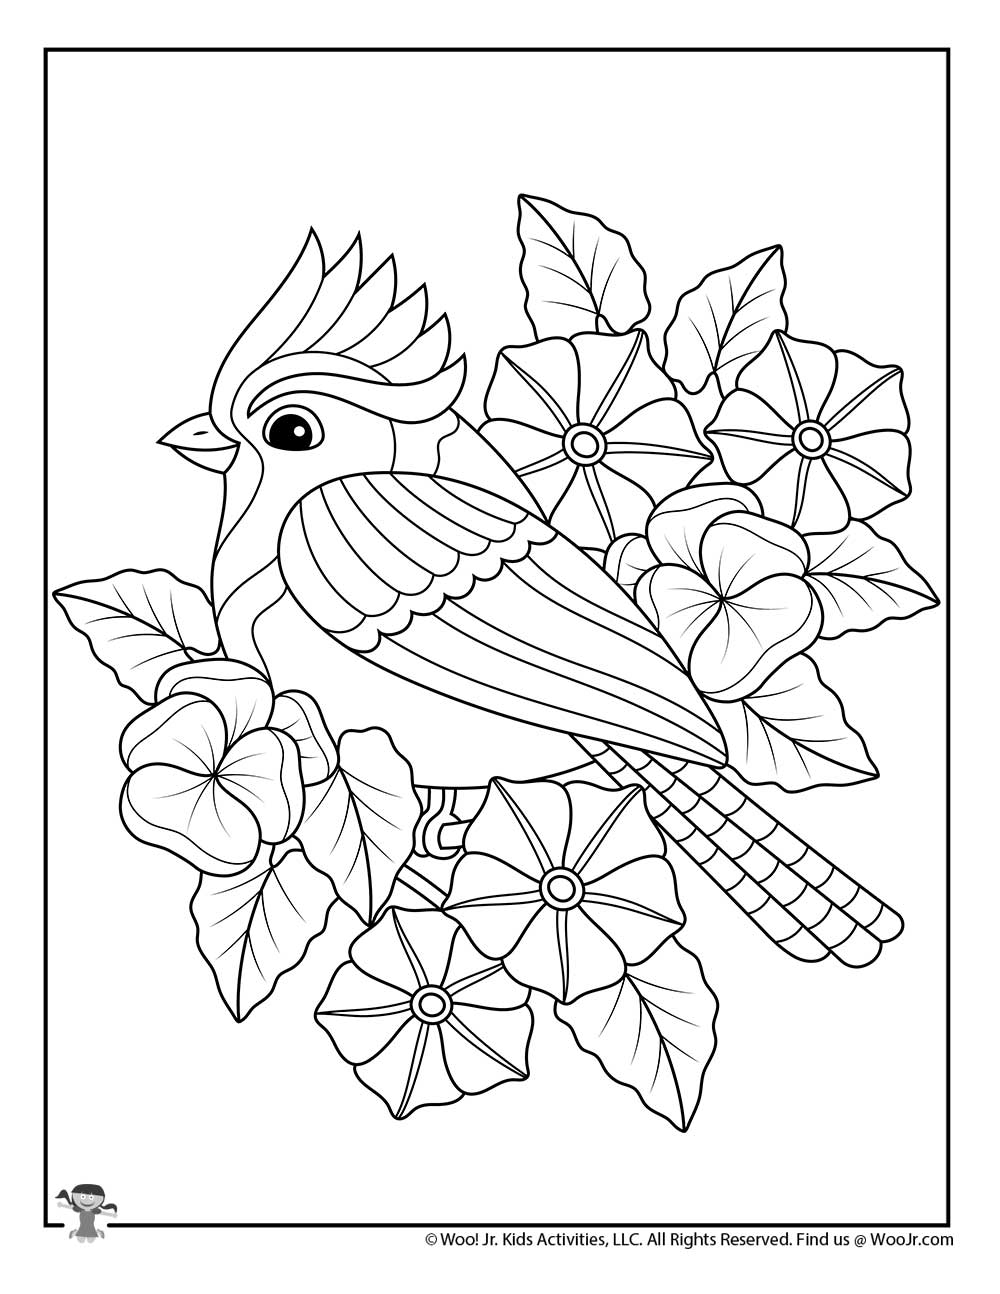 Blue Jay Coloring Page - Free Blue Jay Coloring Pages ... | 1294x1000